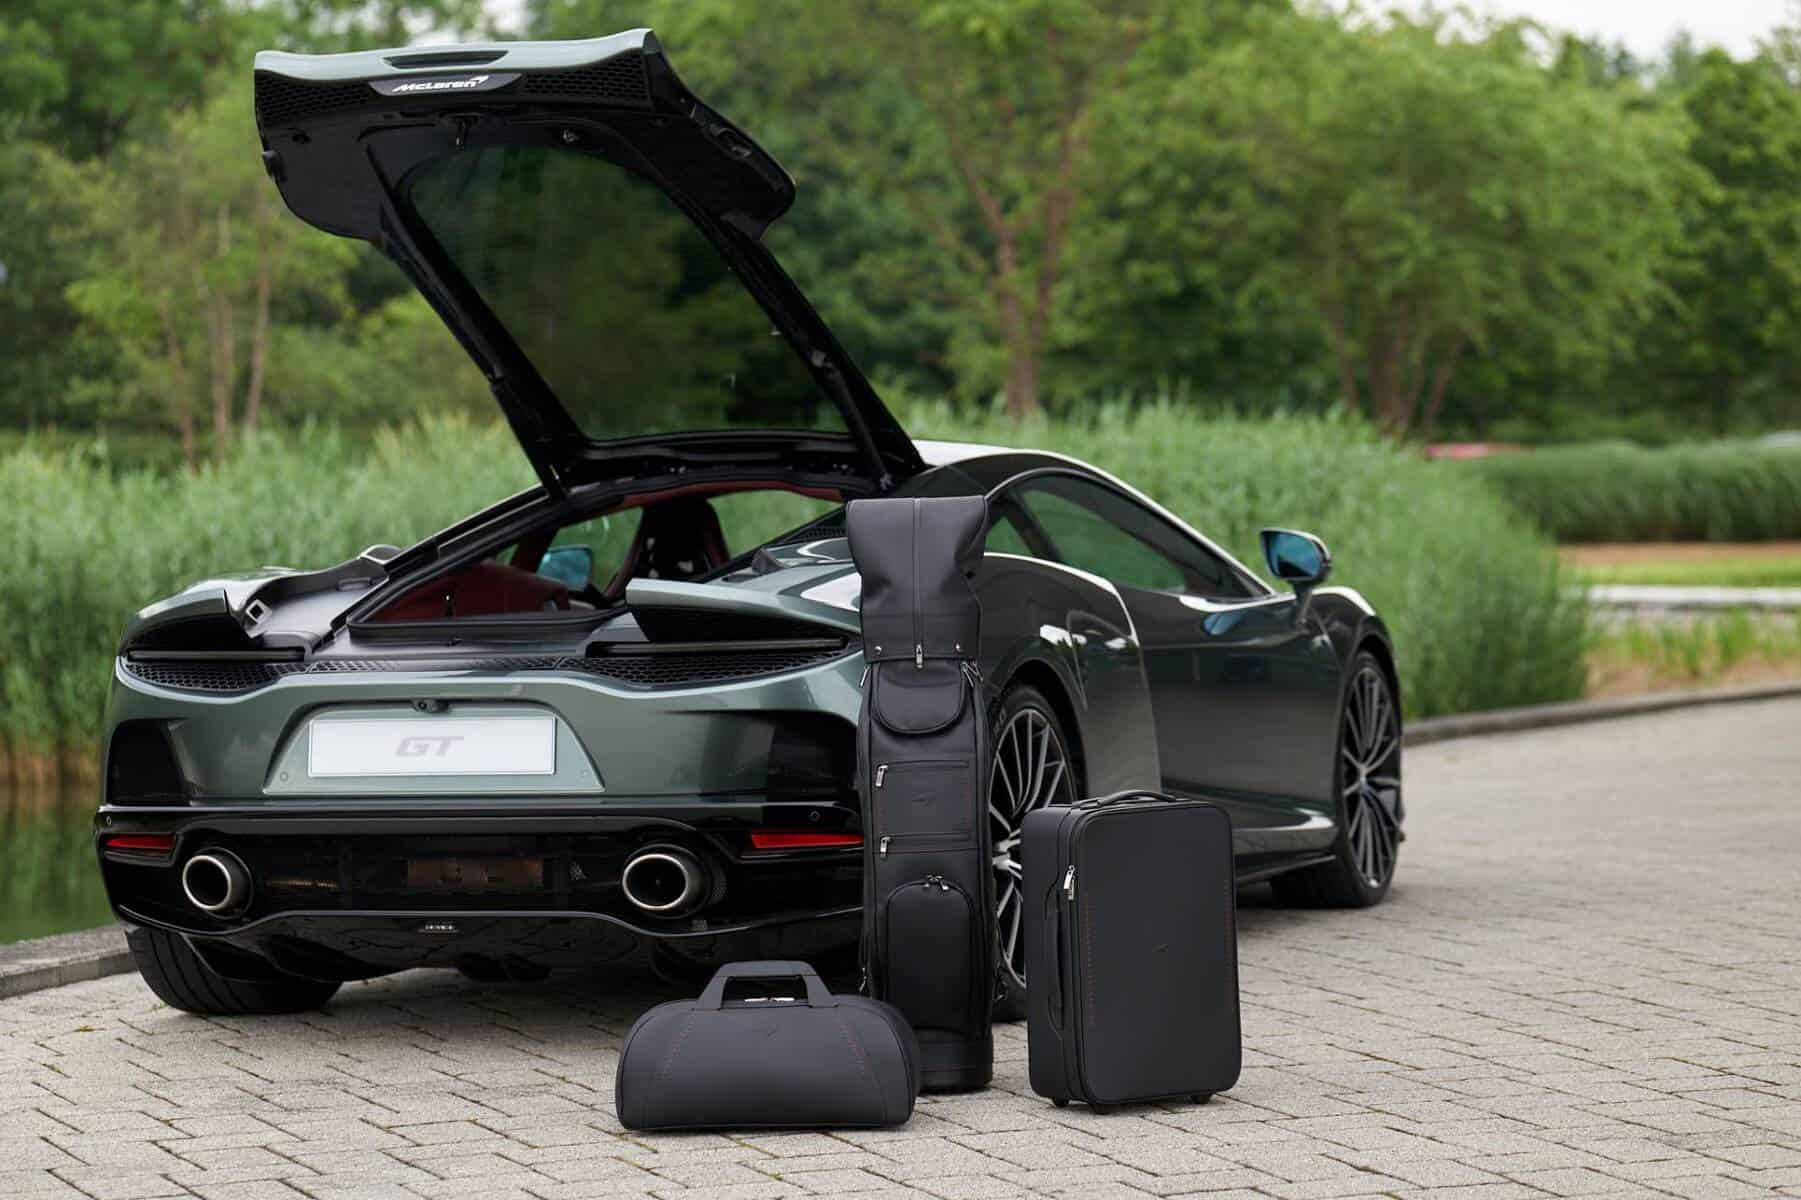 mclaren gt luggage set 4